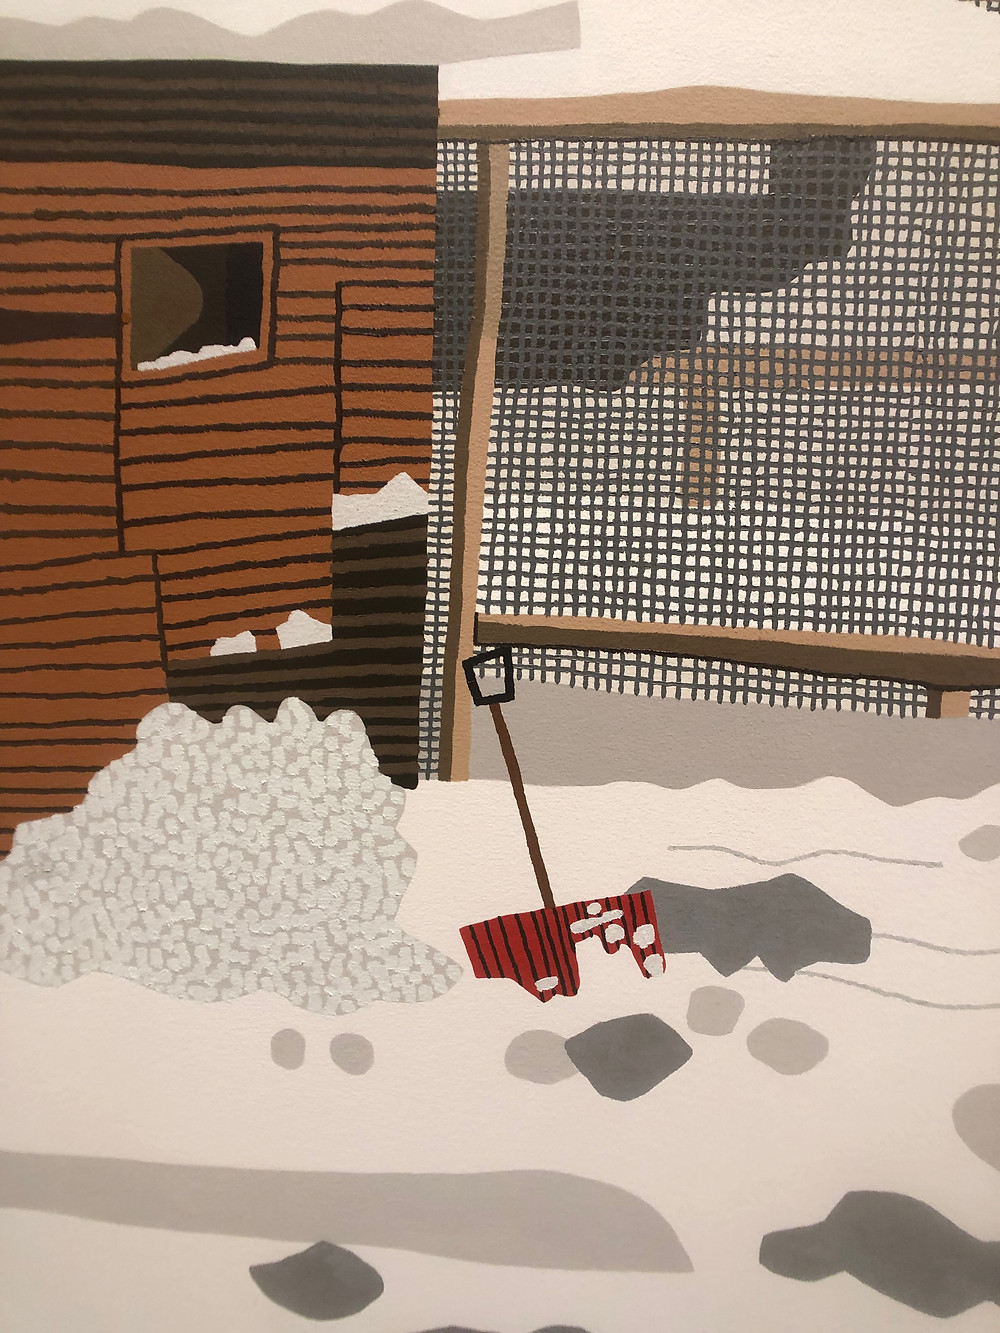 Detail shot of Snowscape with Barn.